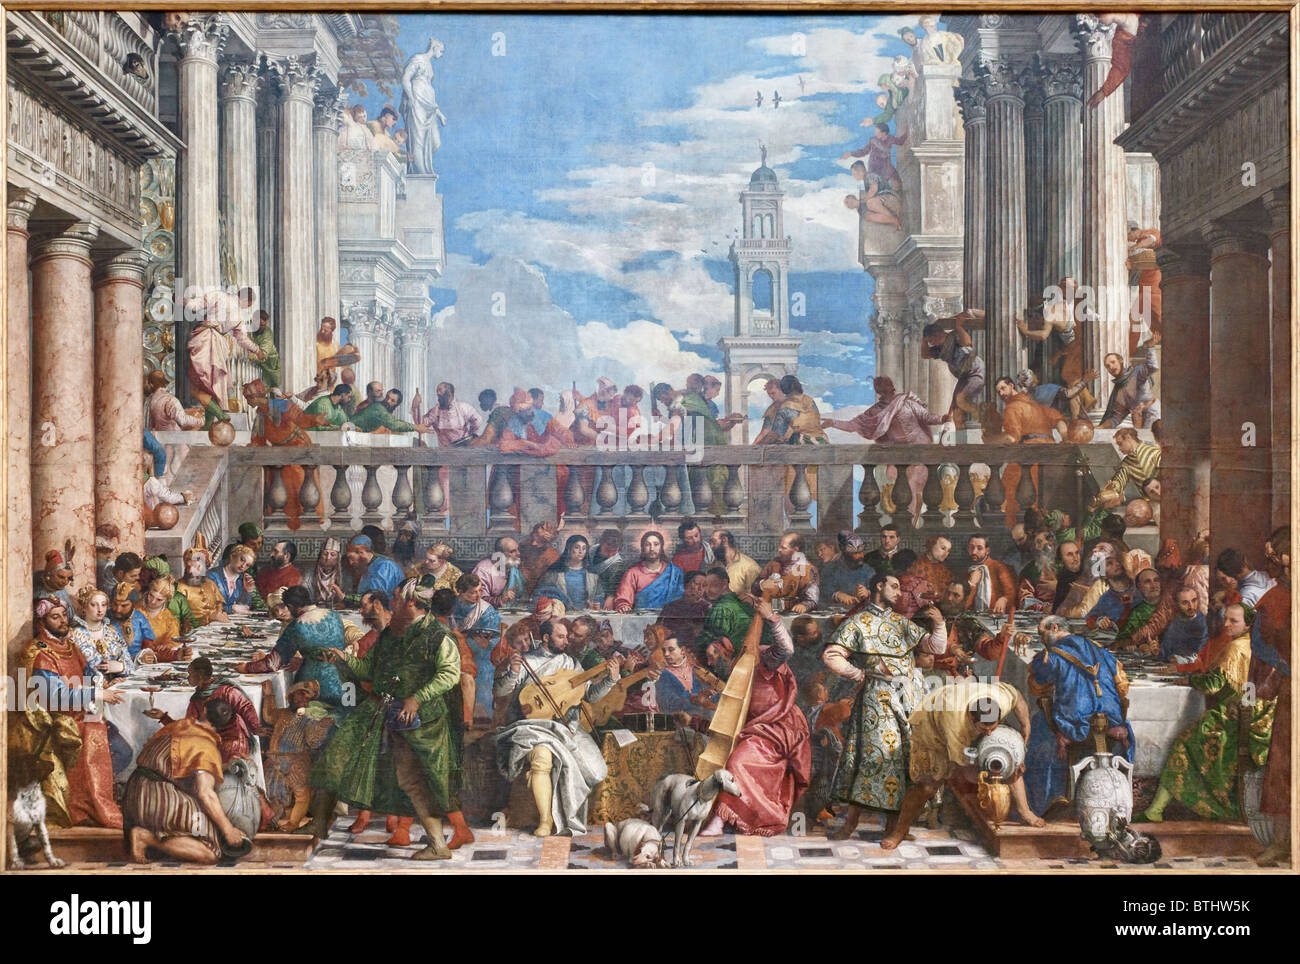 Wedding Feast at Cana Paolo CALIARI VERONESE, Louvre Museum Paris Stock Photo